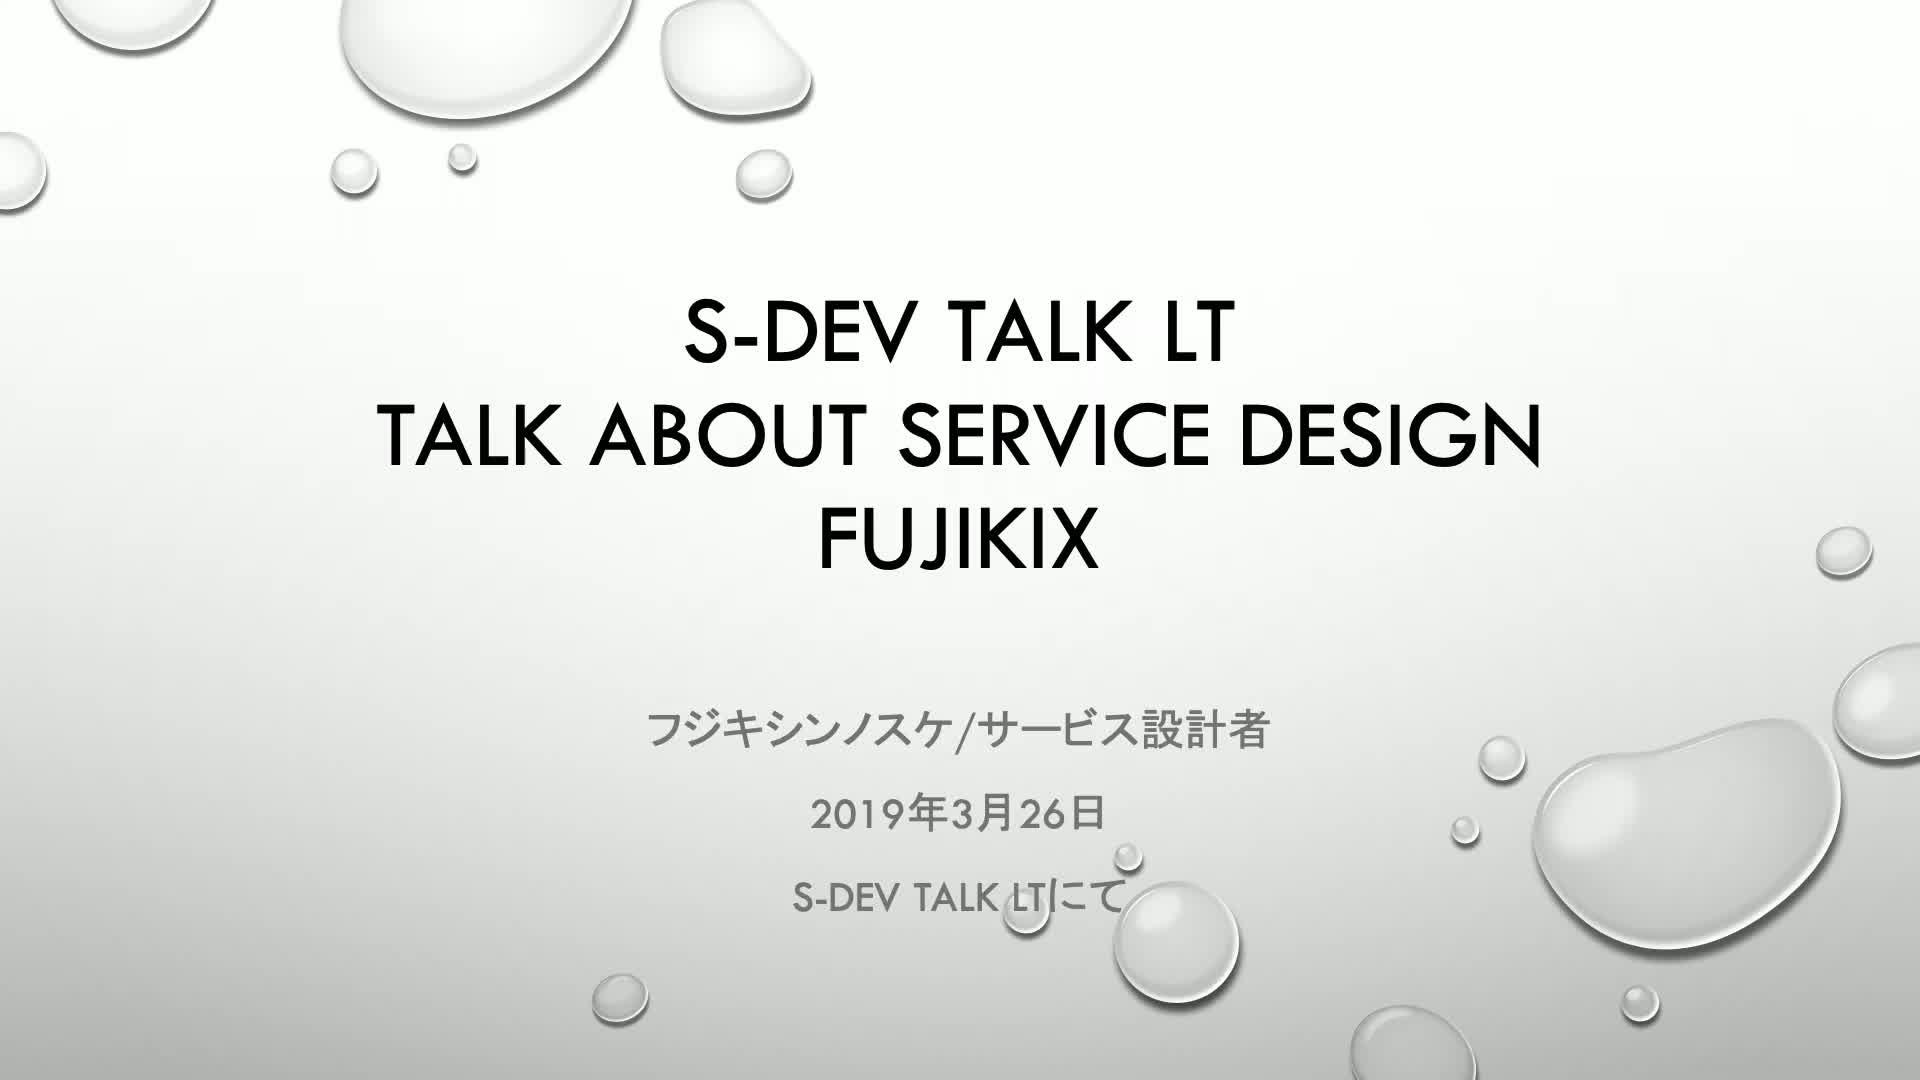 TALK ABOUT SERVICE DESIGN FUJIKIX